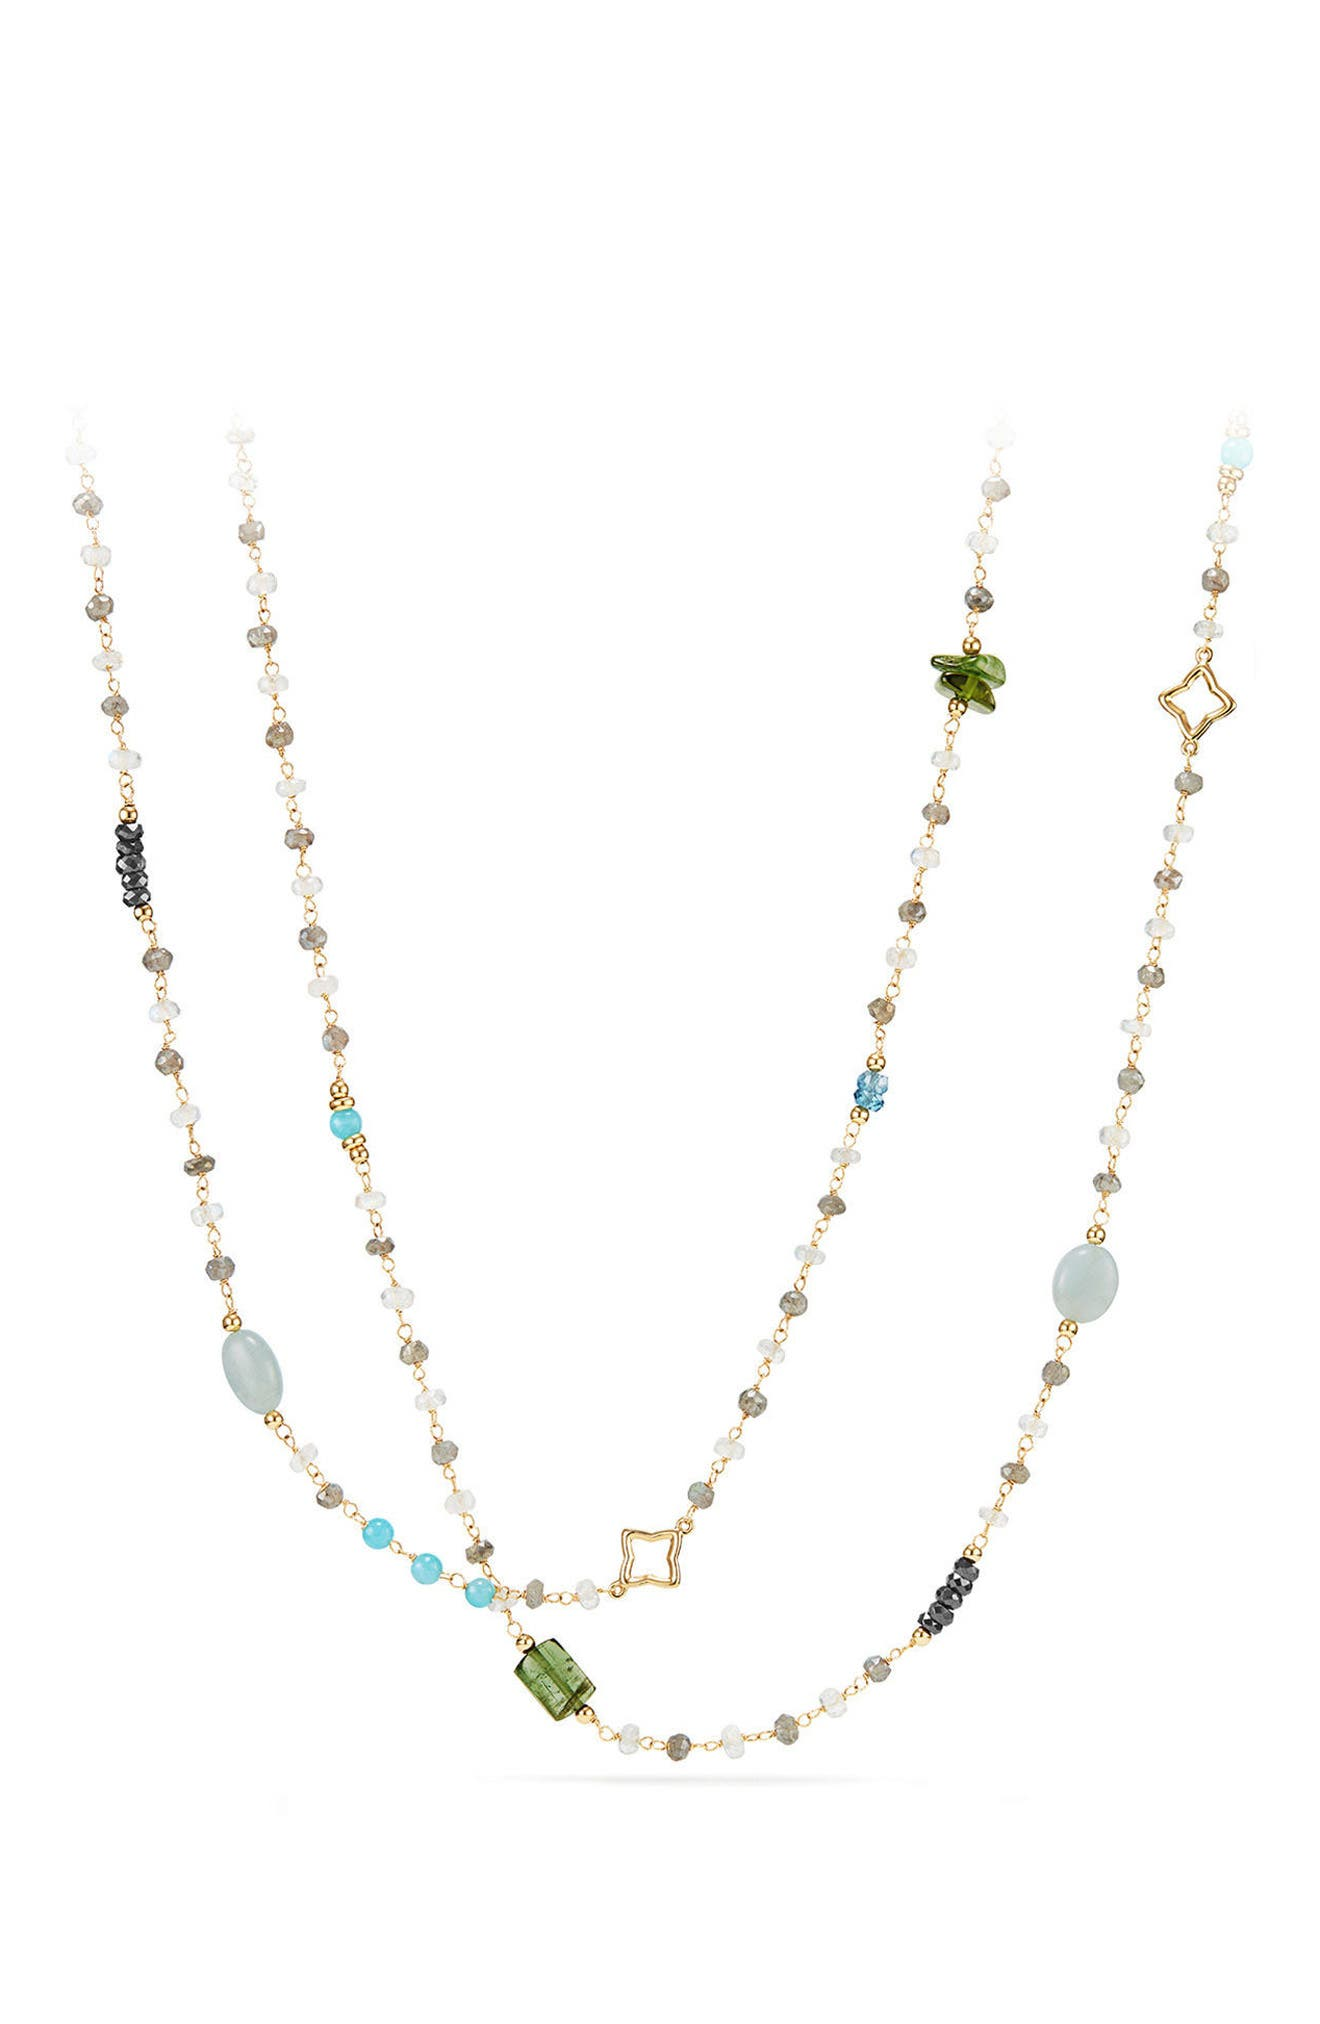 David Yurman Long Bead & Chain Necklace with Semiprecious Stones in 18K Gold